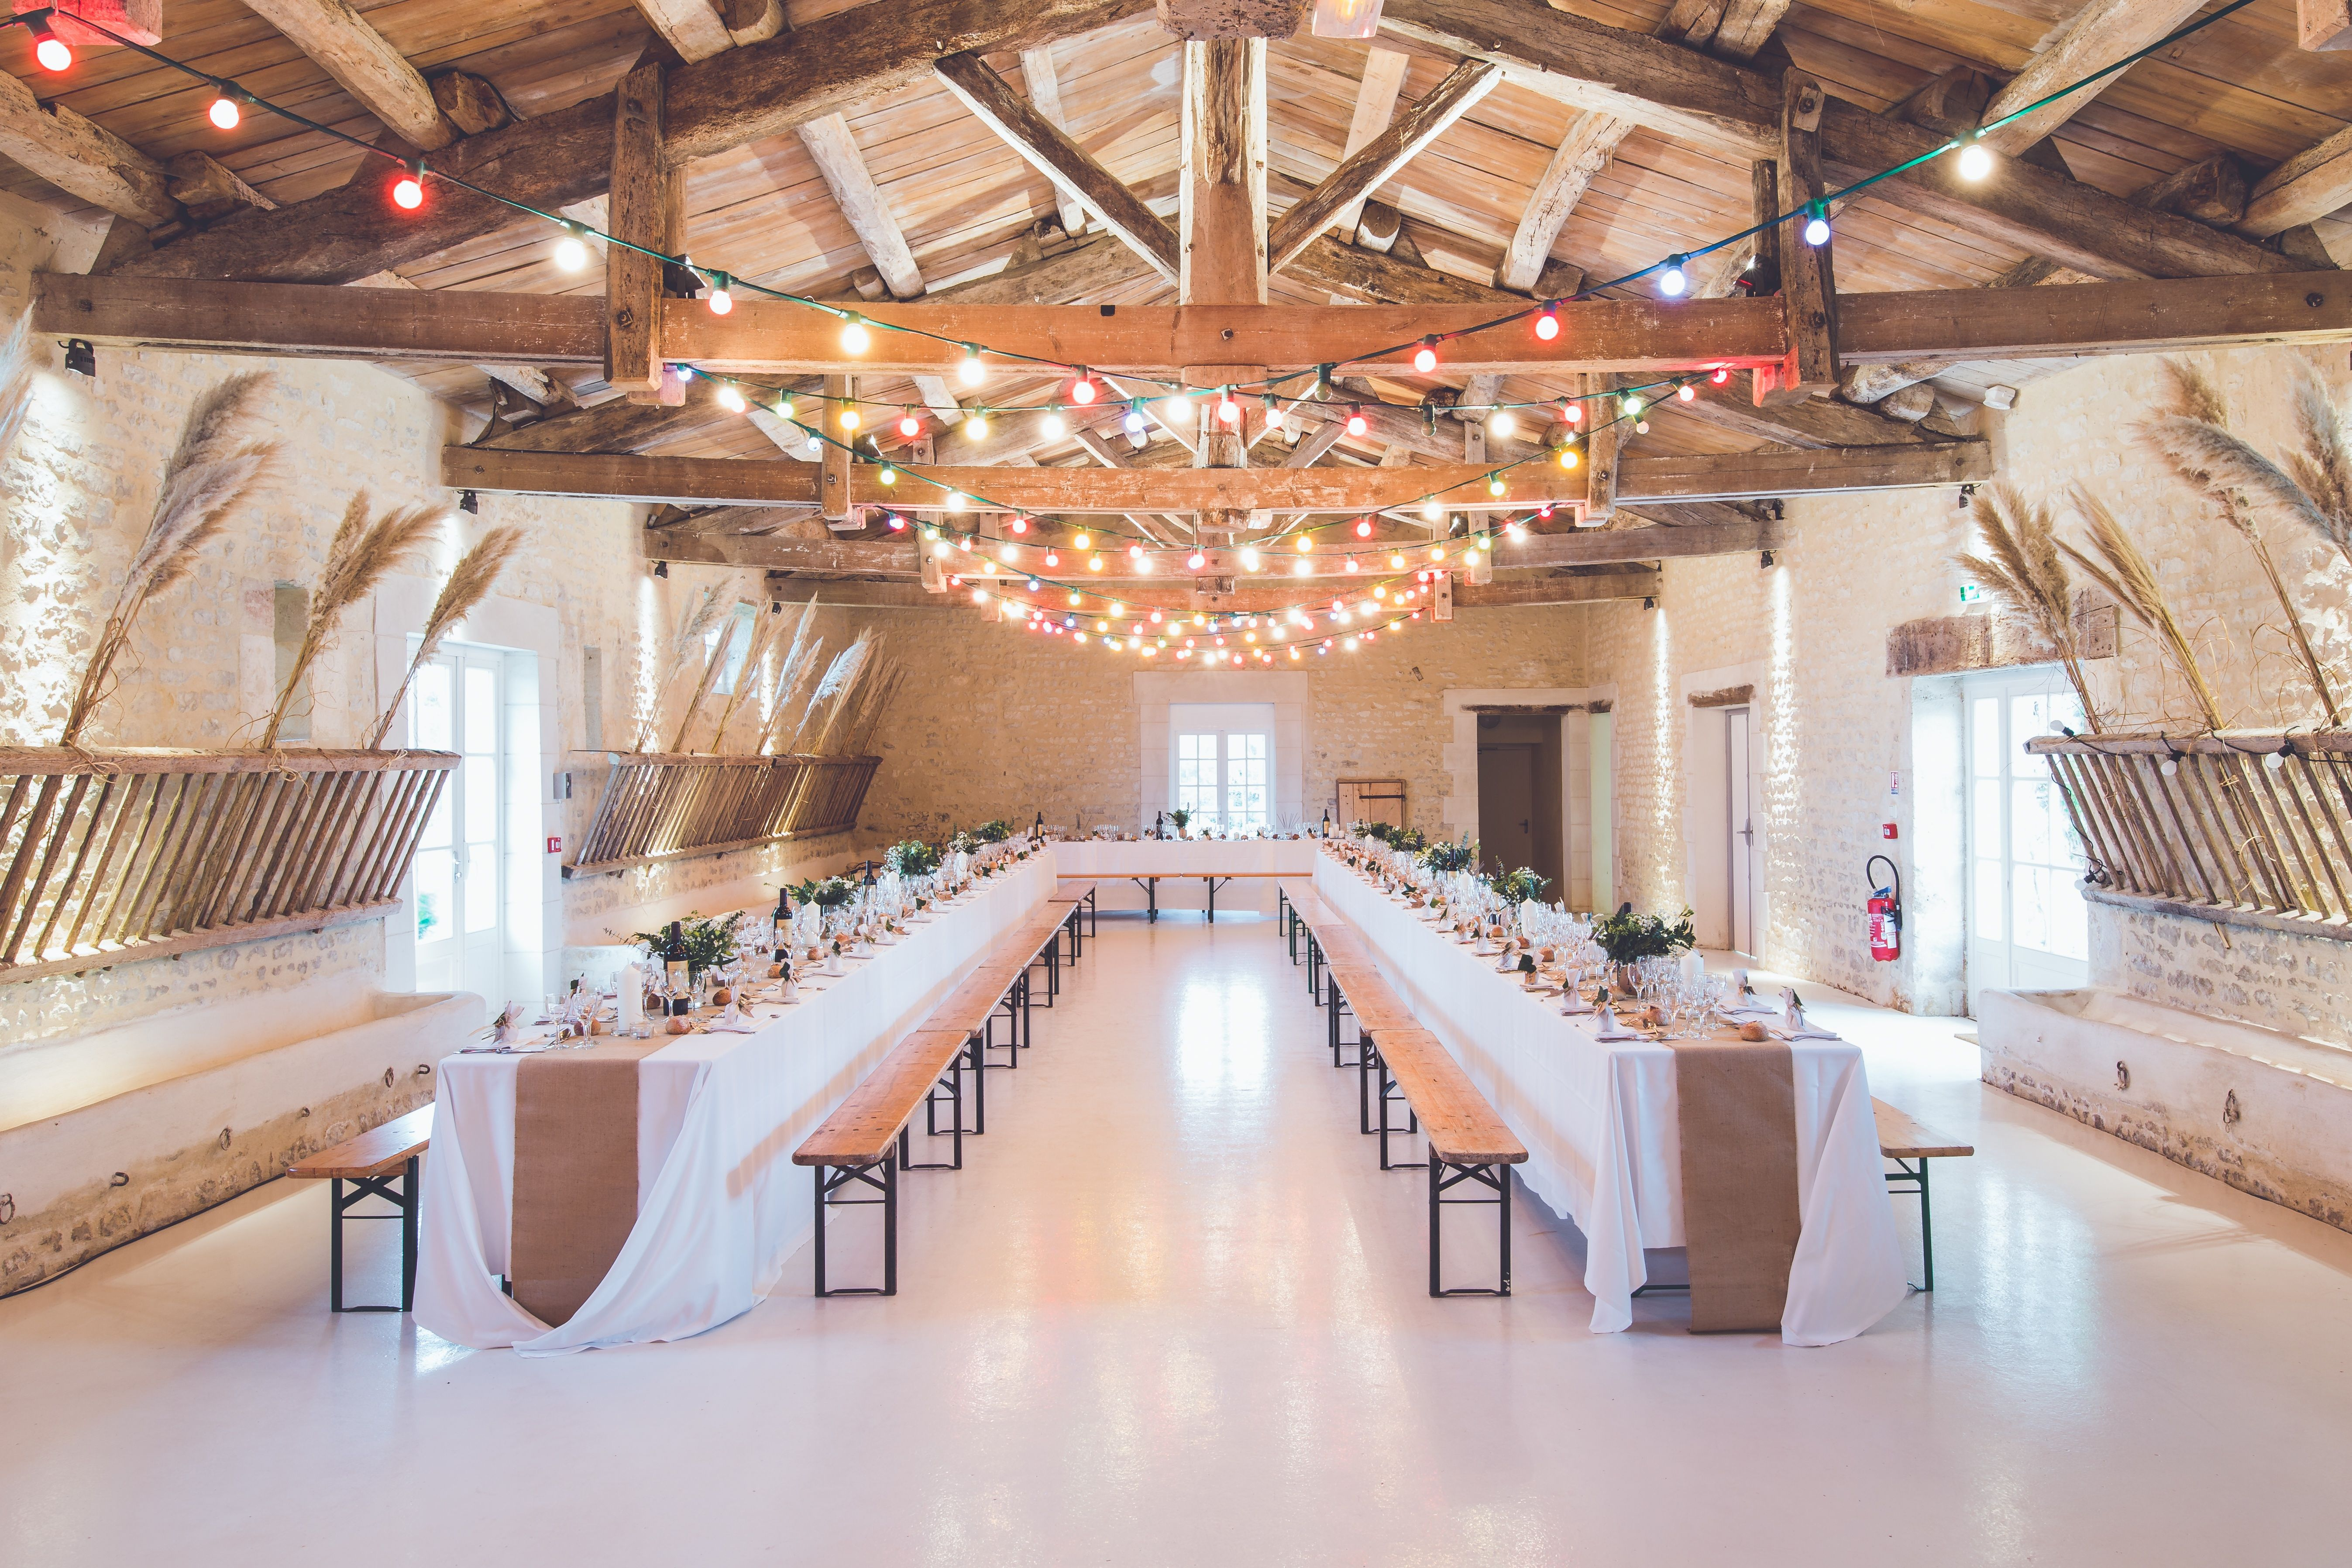 Plan your perfect wedding venue with a pop up wedding package from